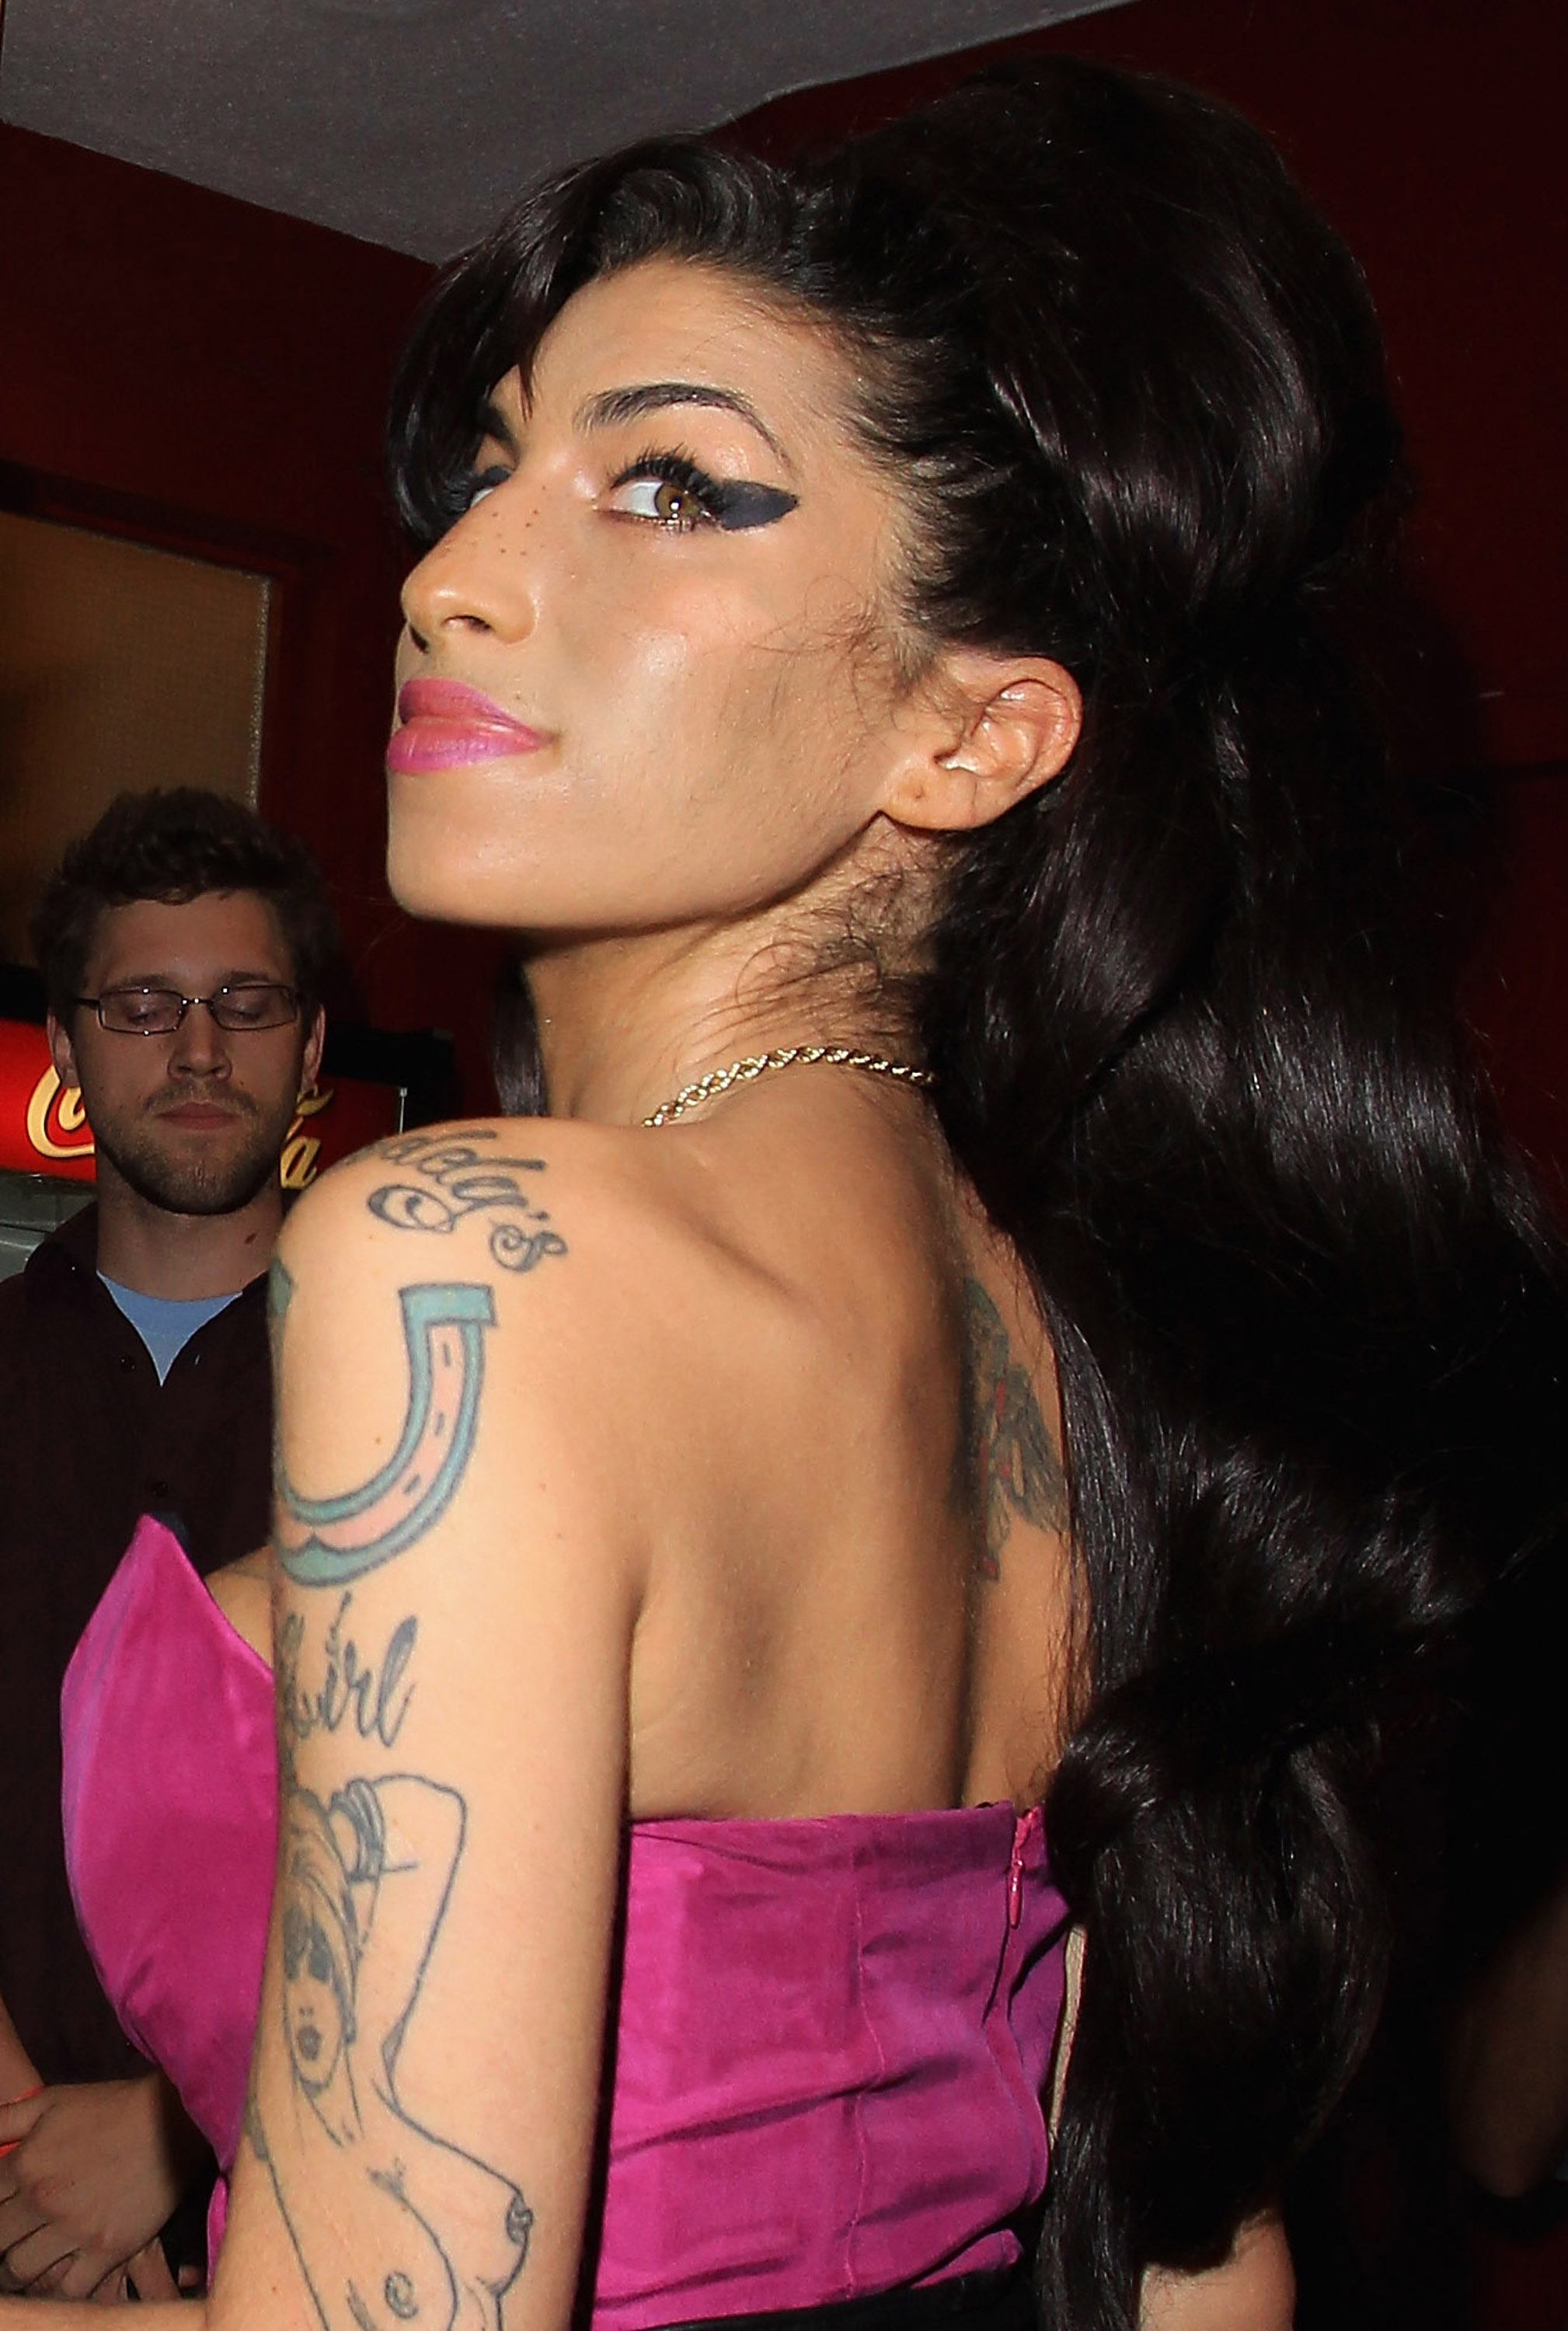 Amy Winehouse 1 400 HQ-UHQ